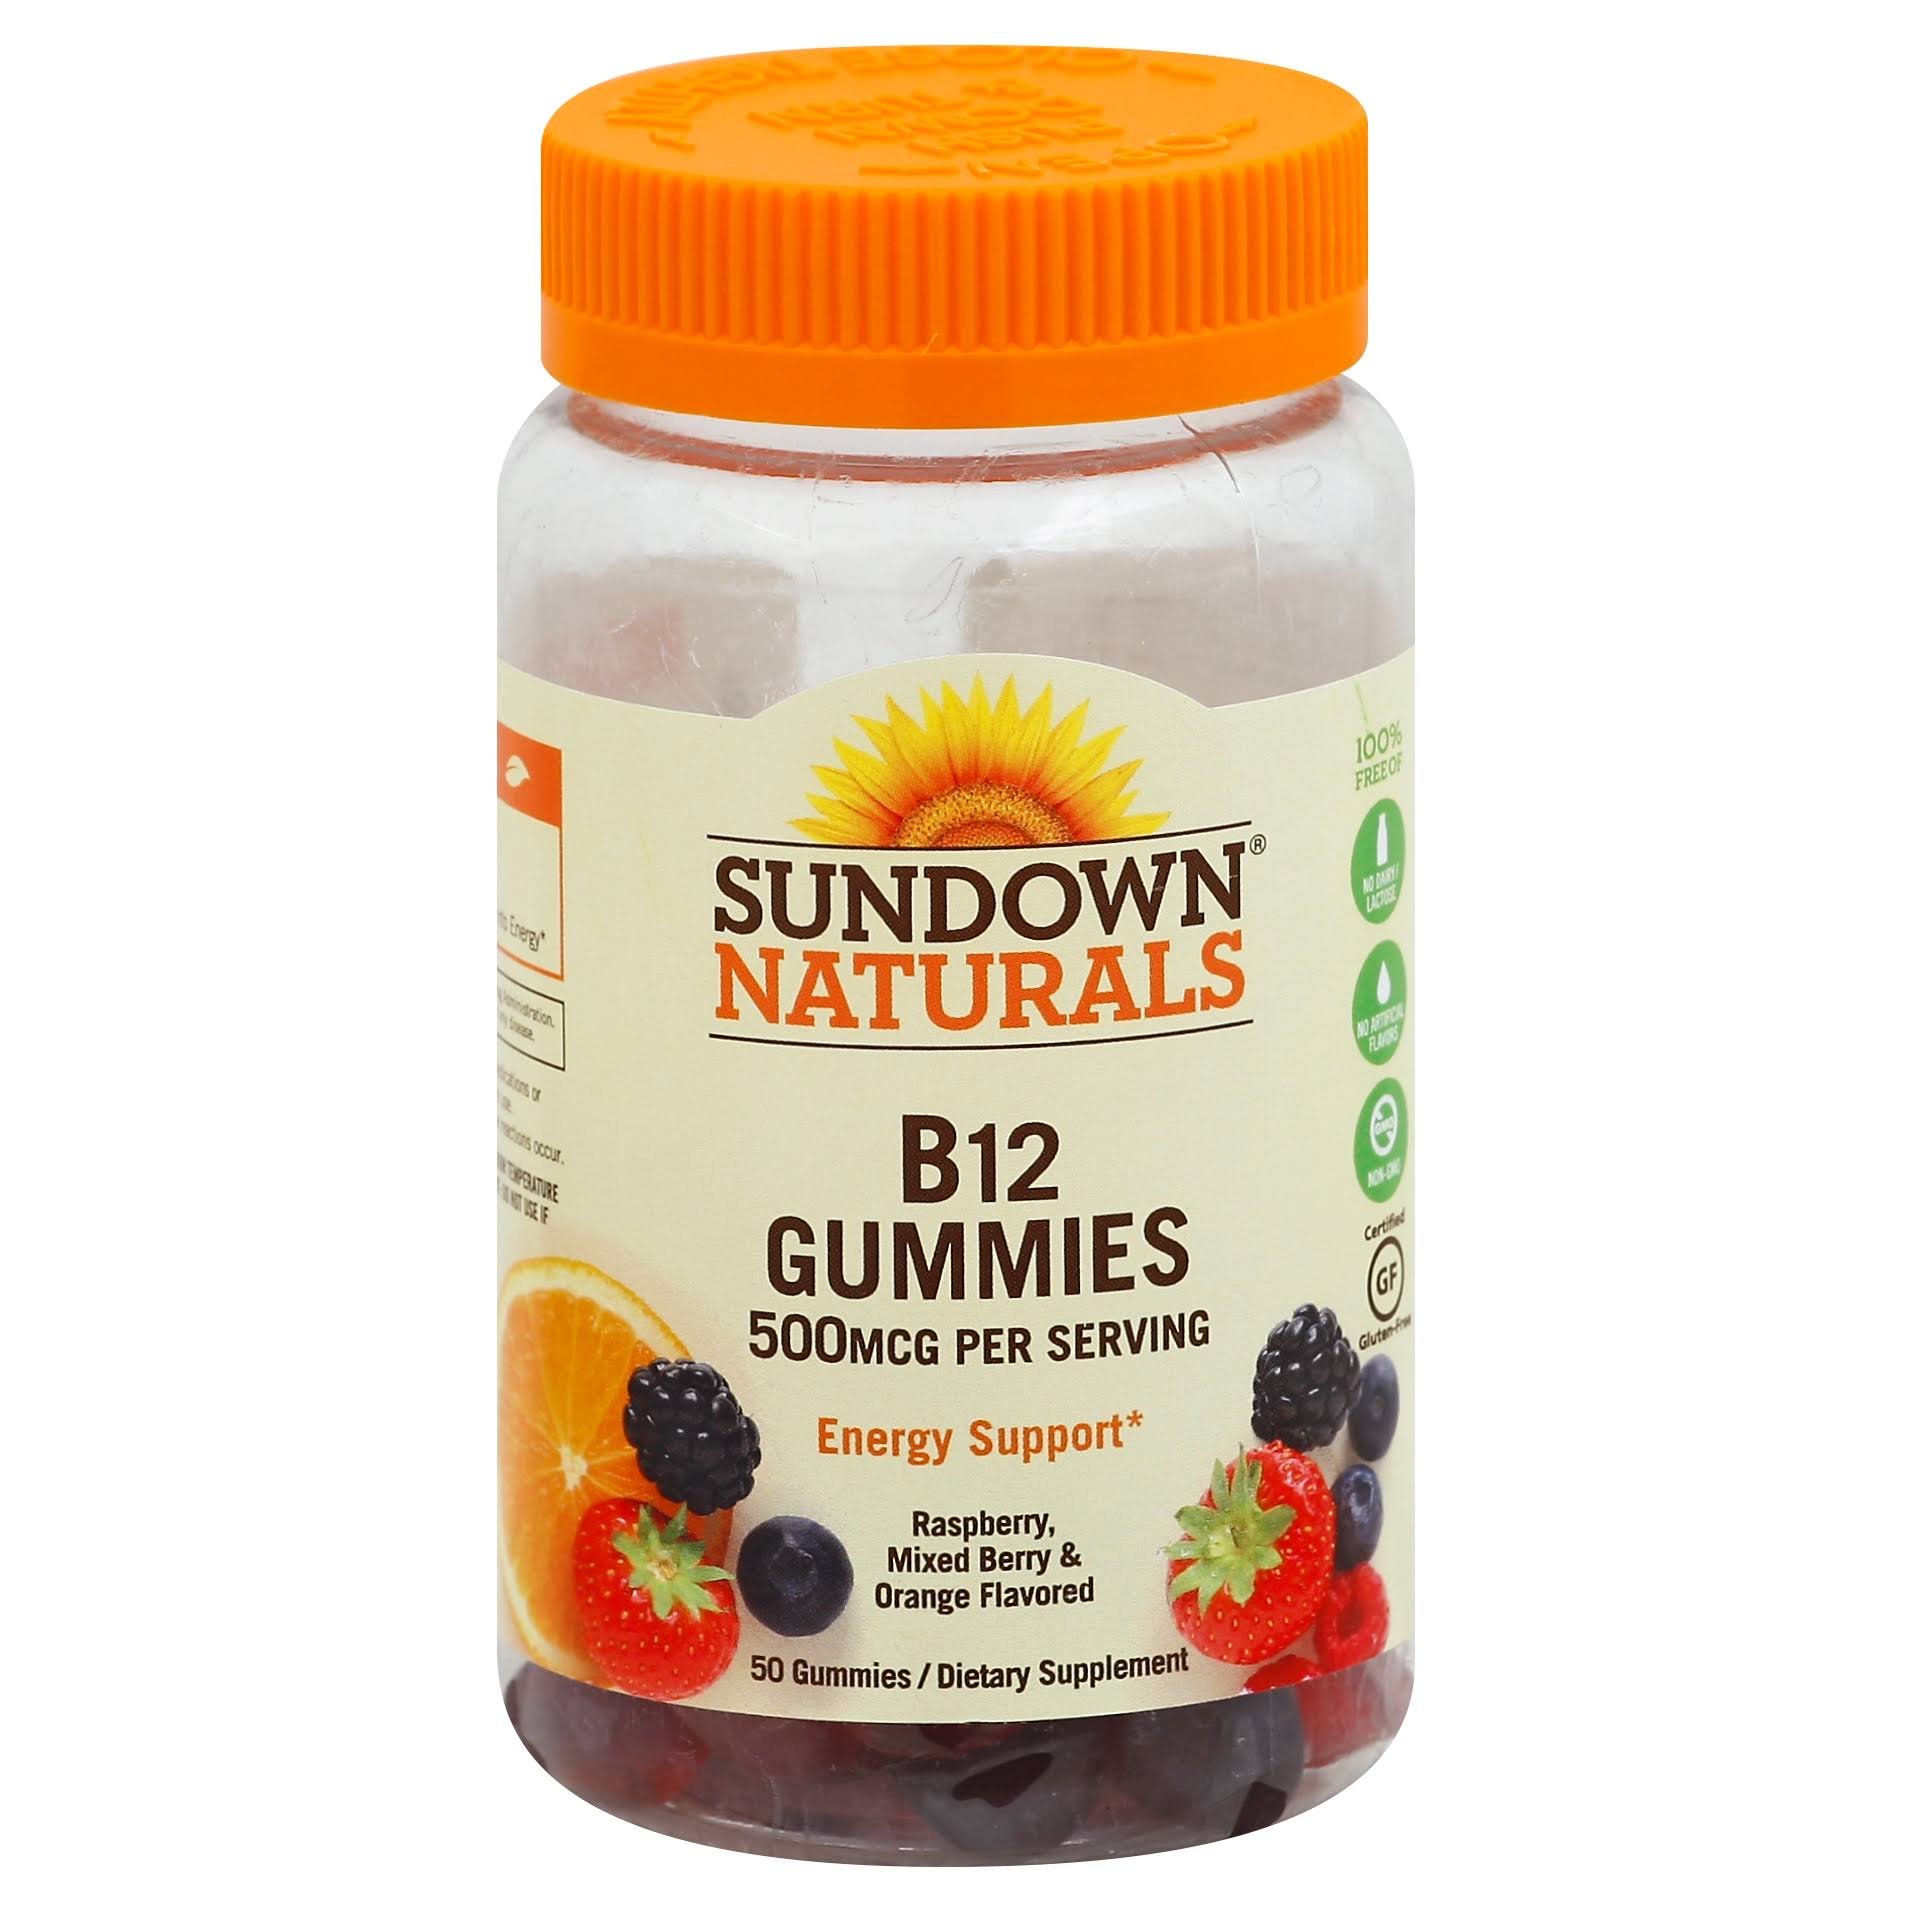 Sundown Naturals Vitamin B-12 Energy Support Supplement - 50 Gummies, Assorted Fruit